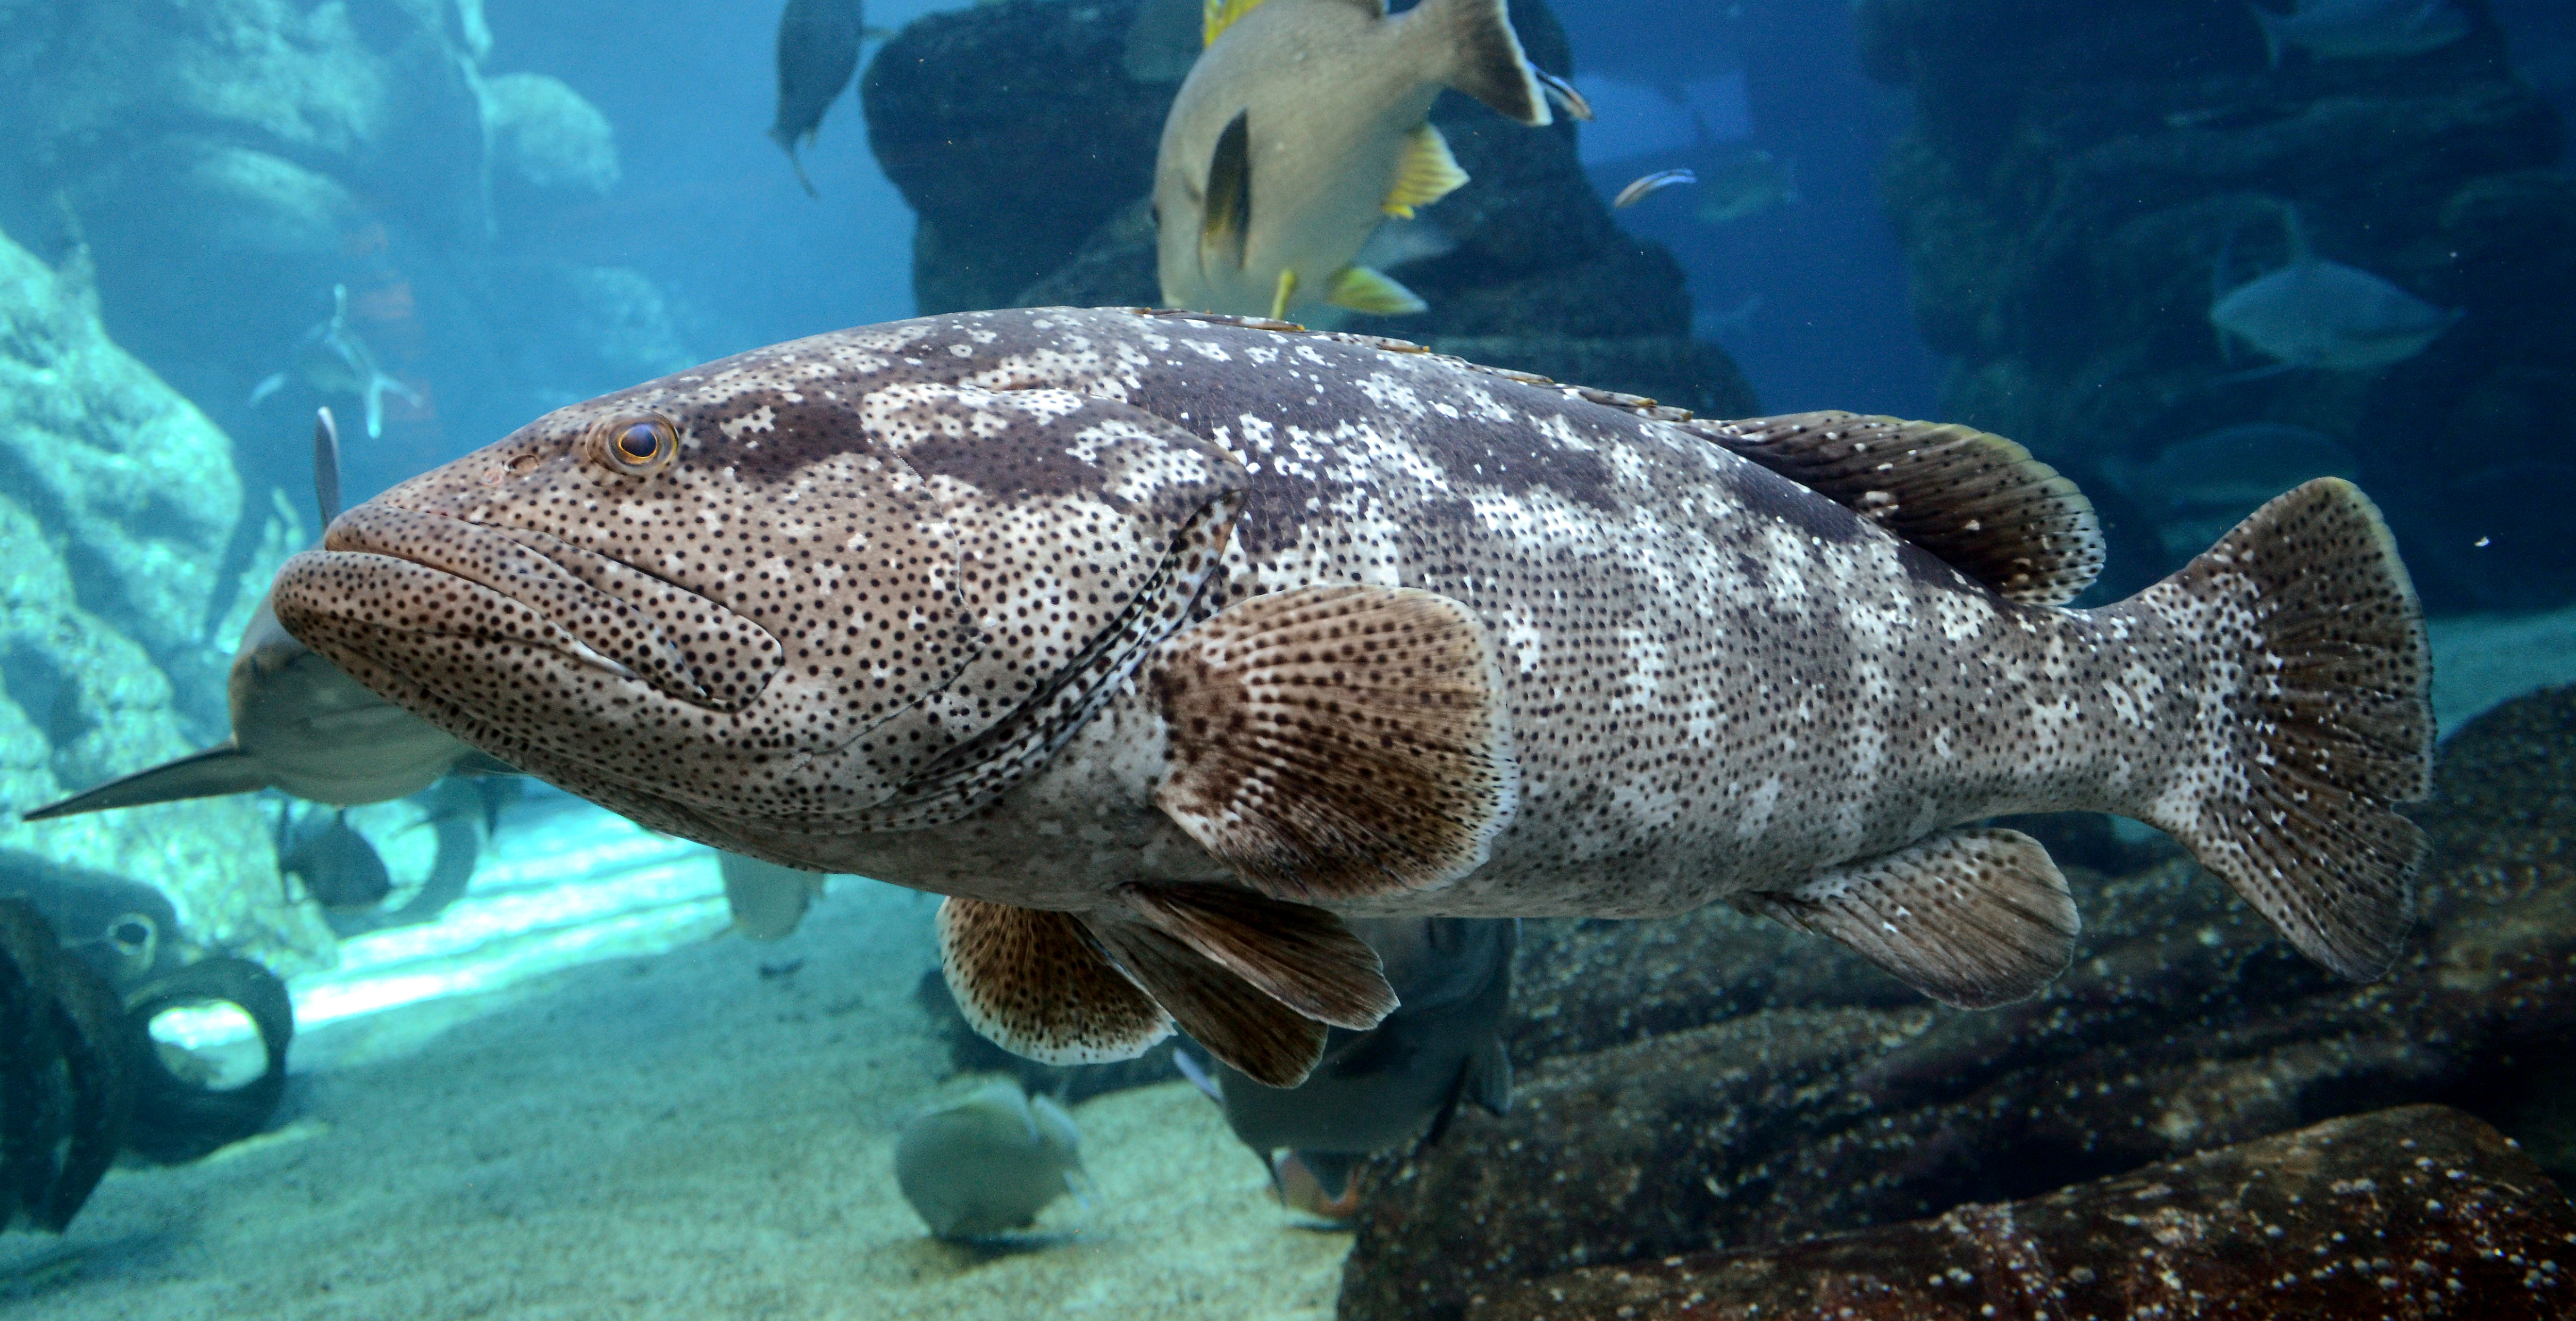 Malabar grouper - Wikipedia